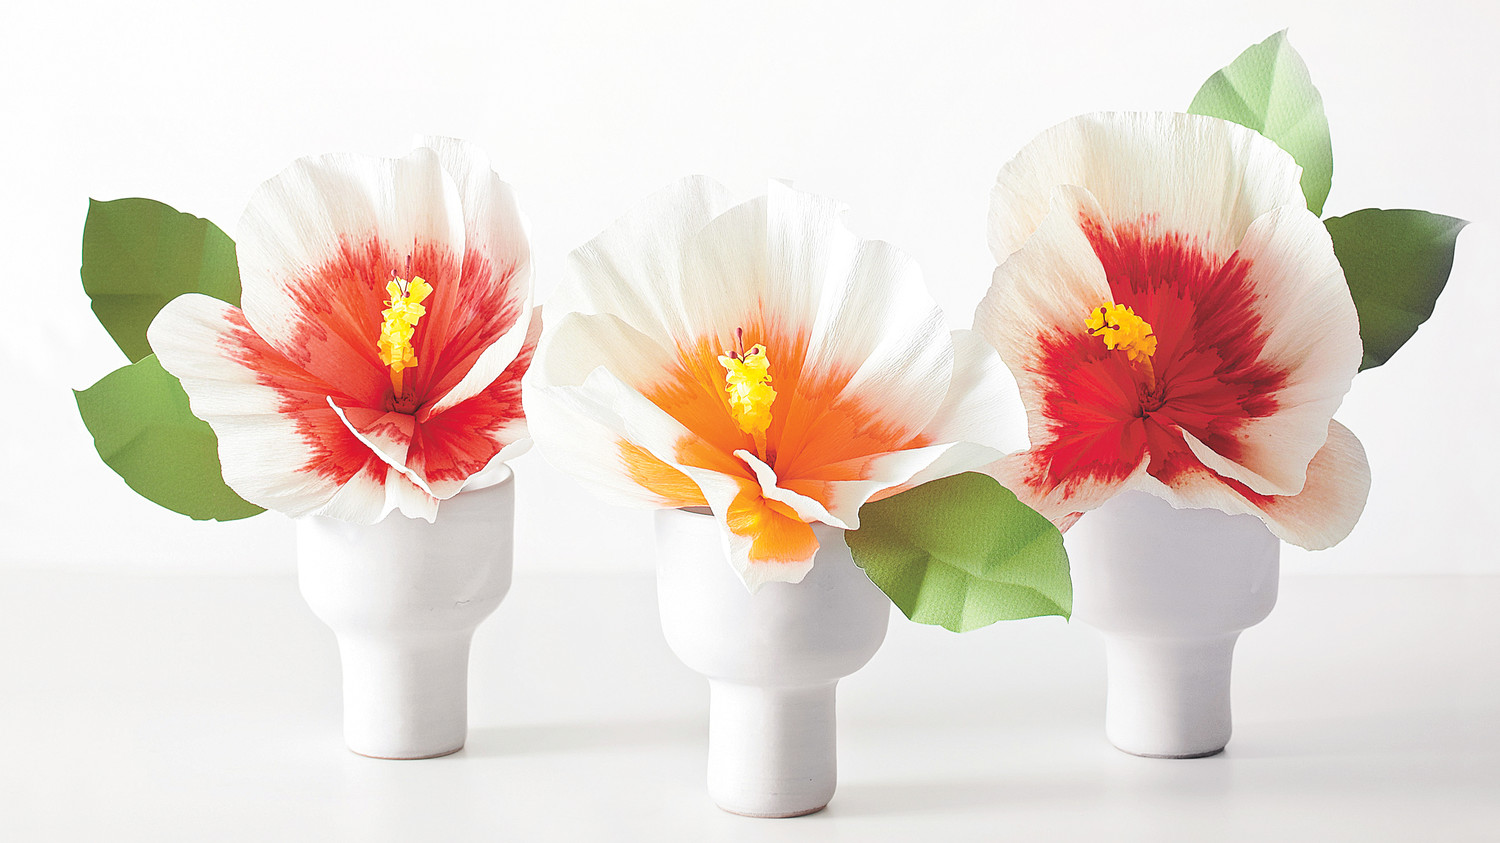 How To Make Tissue Flowers Fan Out The Layers